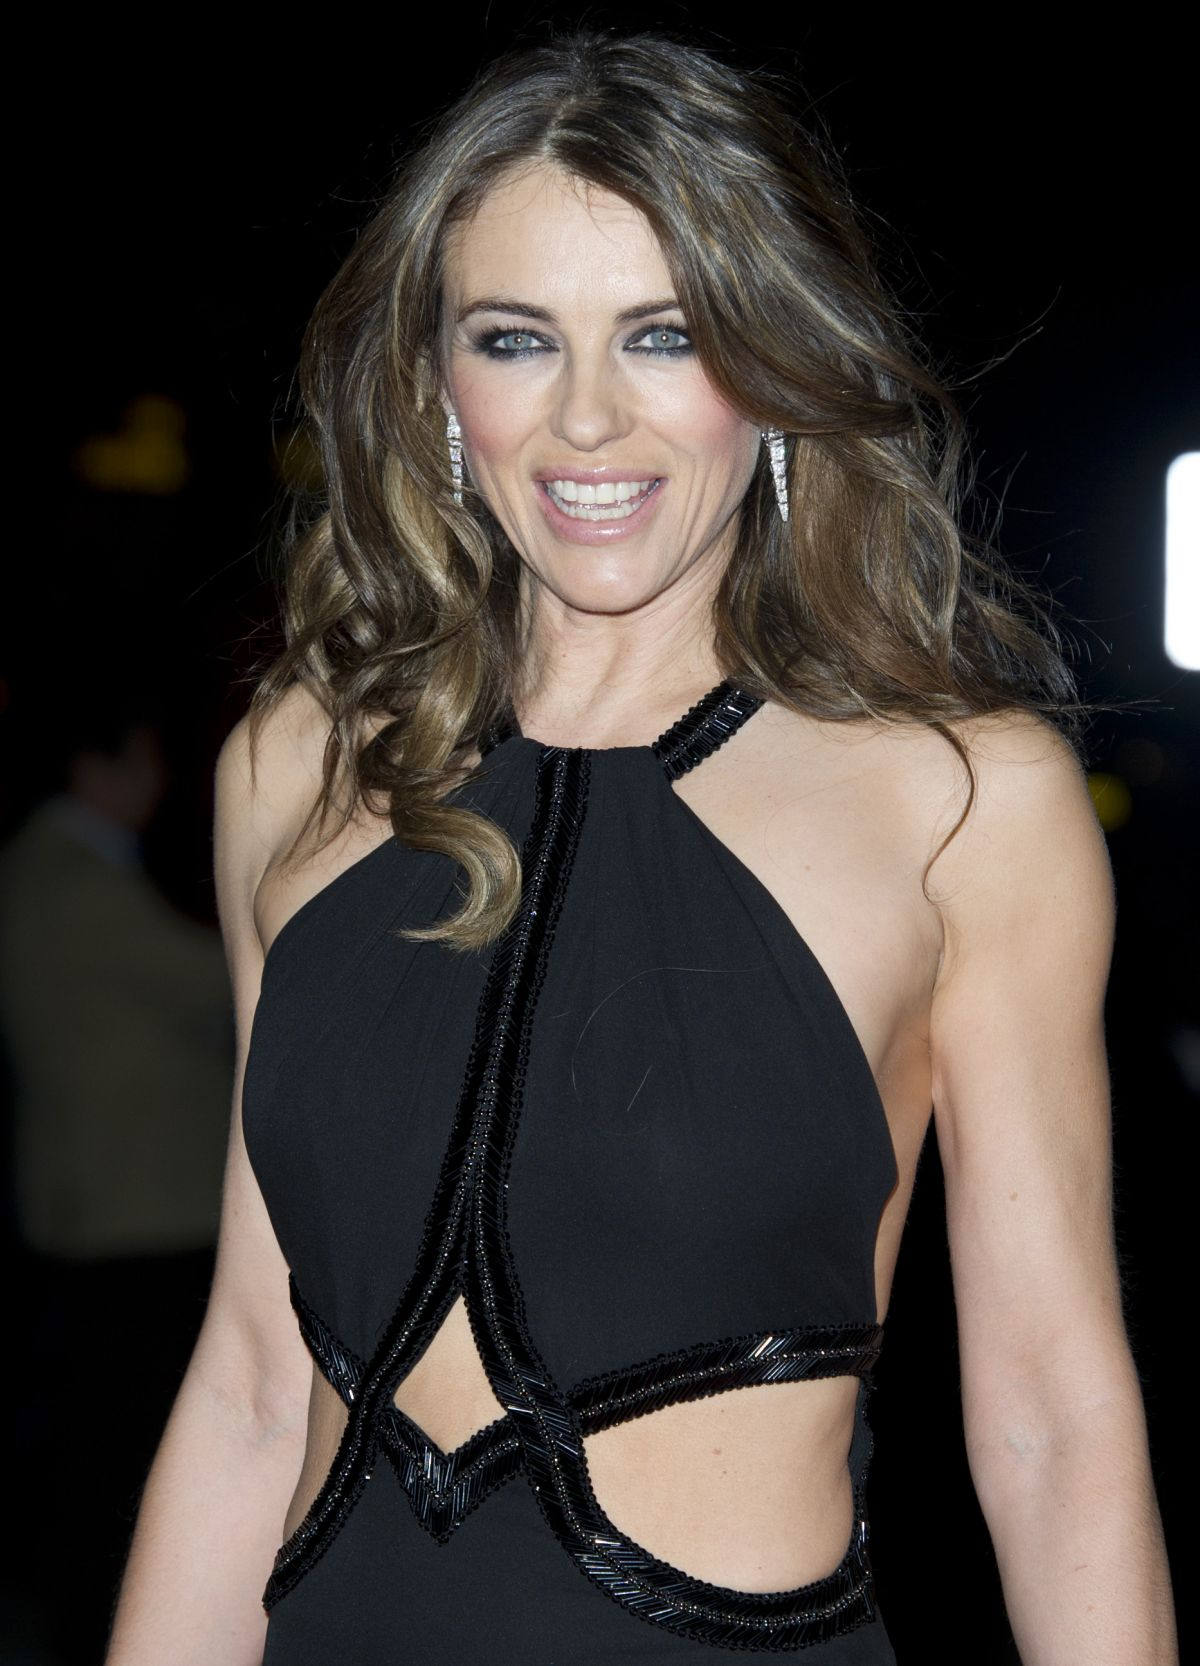 ELIZABETH HURLEY at The Glamour of Italian Fashion Private Dinner in London